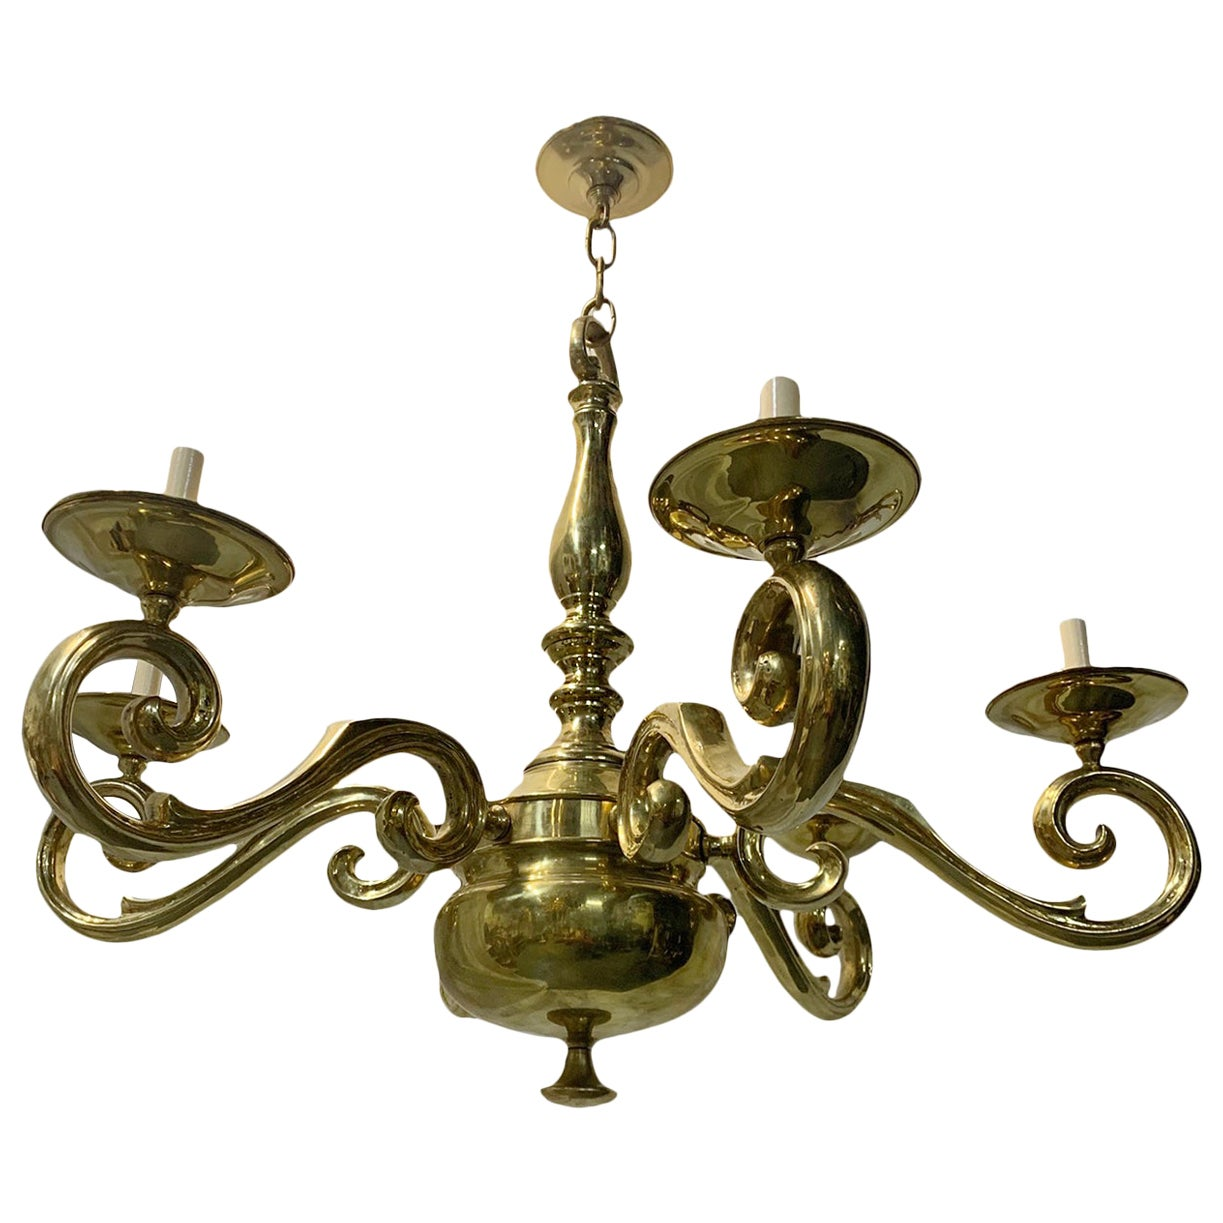 Set of French Polished Bronze Chandeliers, Sold Individually